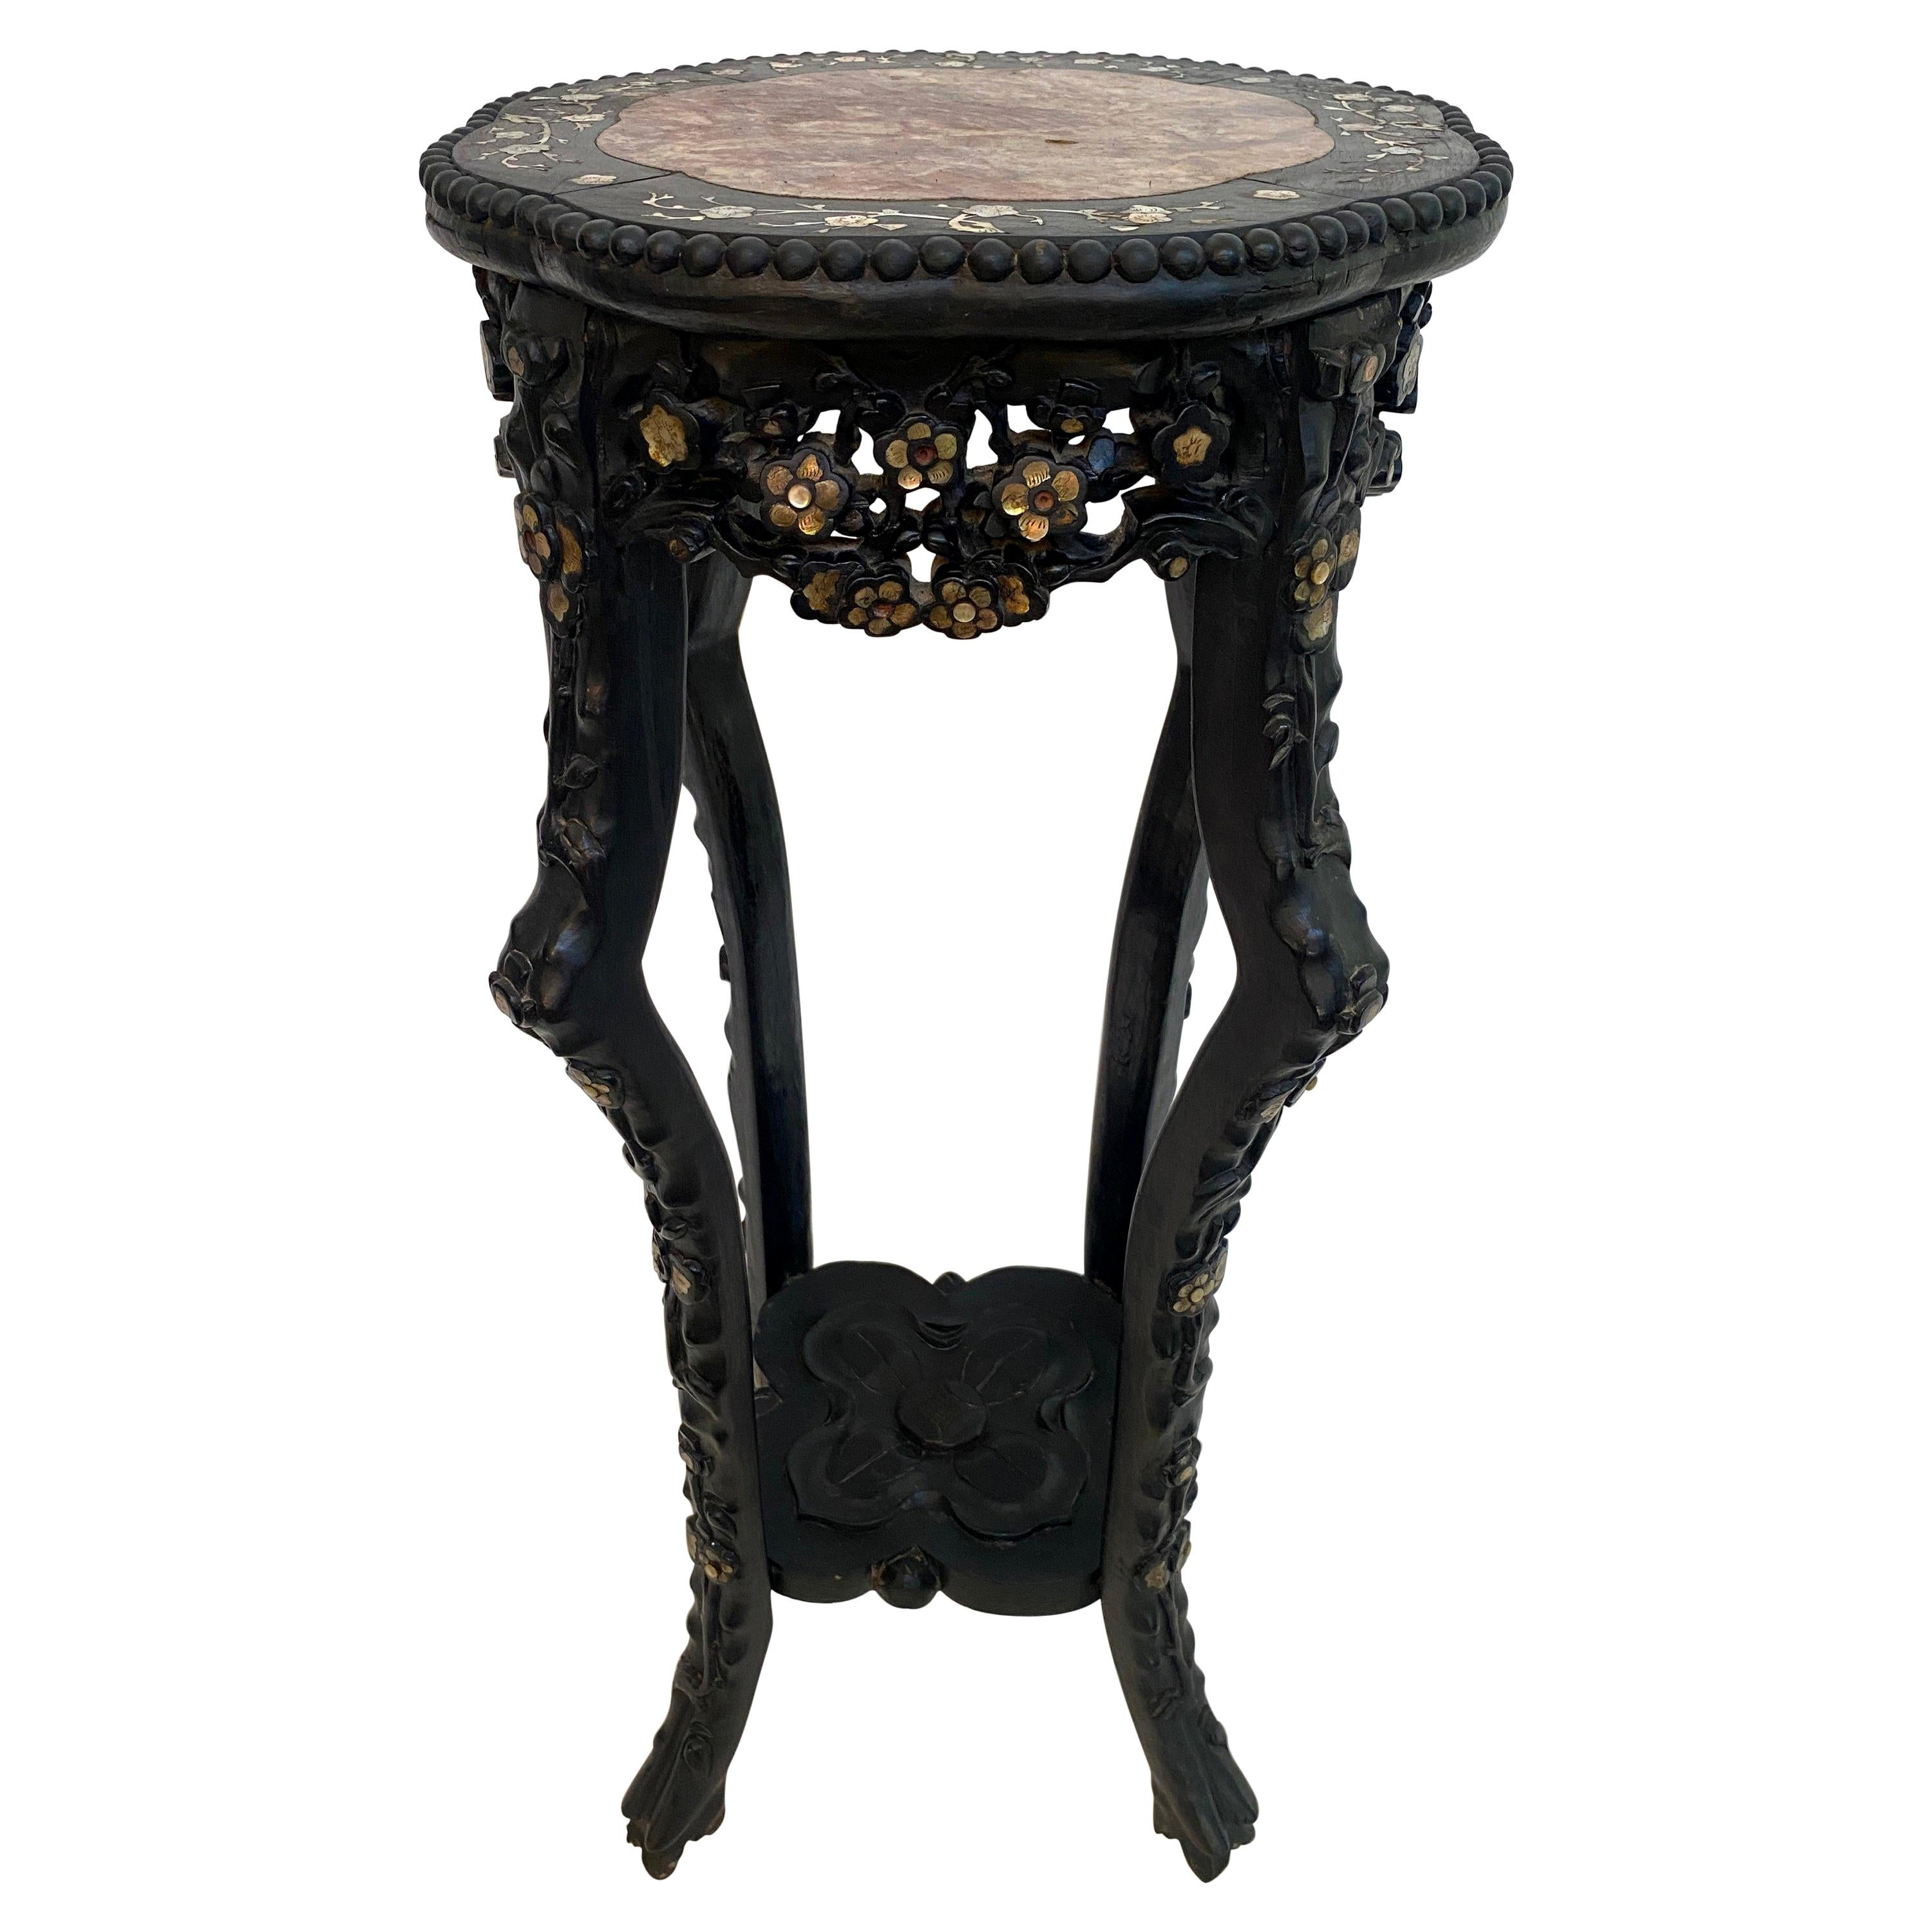 19th Century Chinese Carved Hardwood Flower Stands Marble-Top Insert